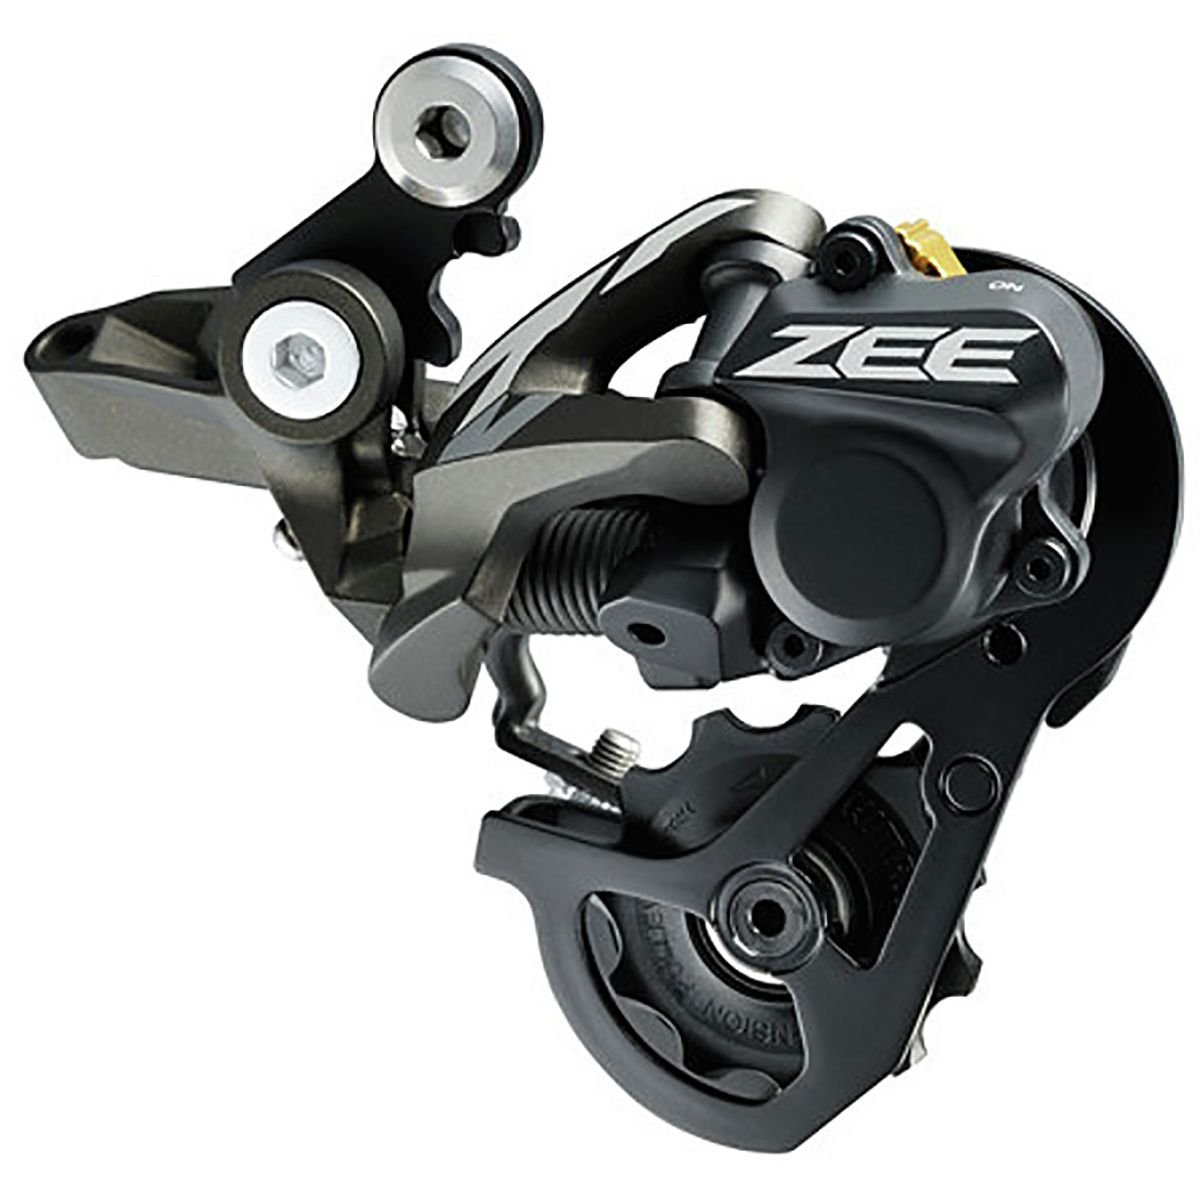 SHIMANO RD-M640 Zee Shadow Plus 10 Speed Rear Derailleur (Use with 11-32/11-36 Cassette) by SHIMANO